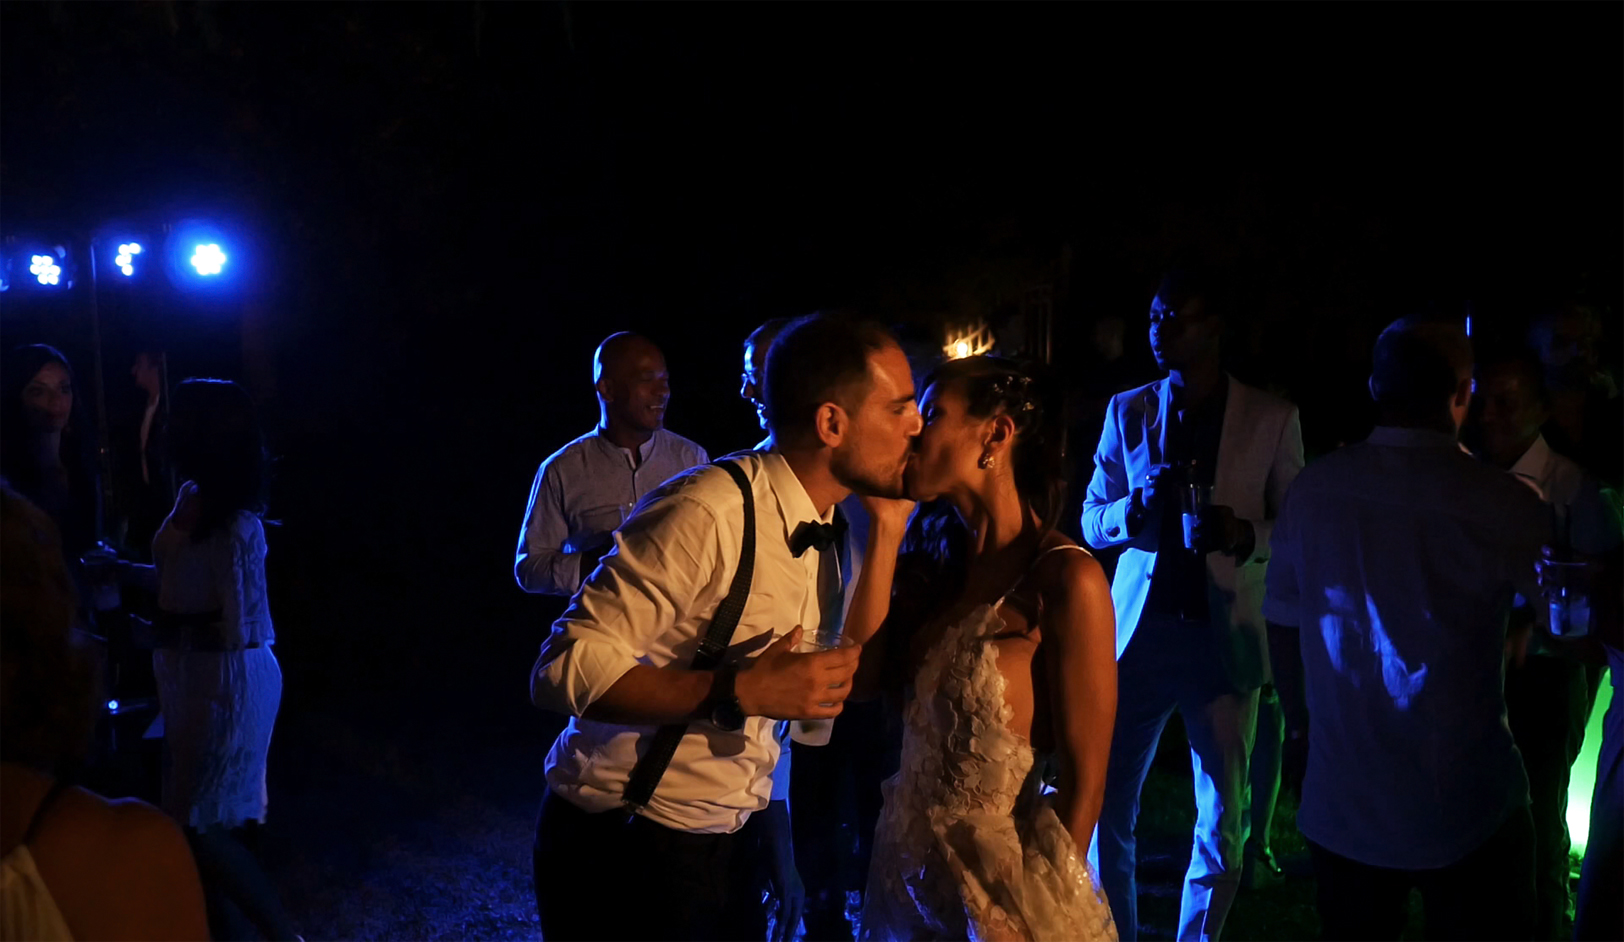 wedding-in-fattoria-di-larniano-party-bride-groom.jpg